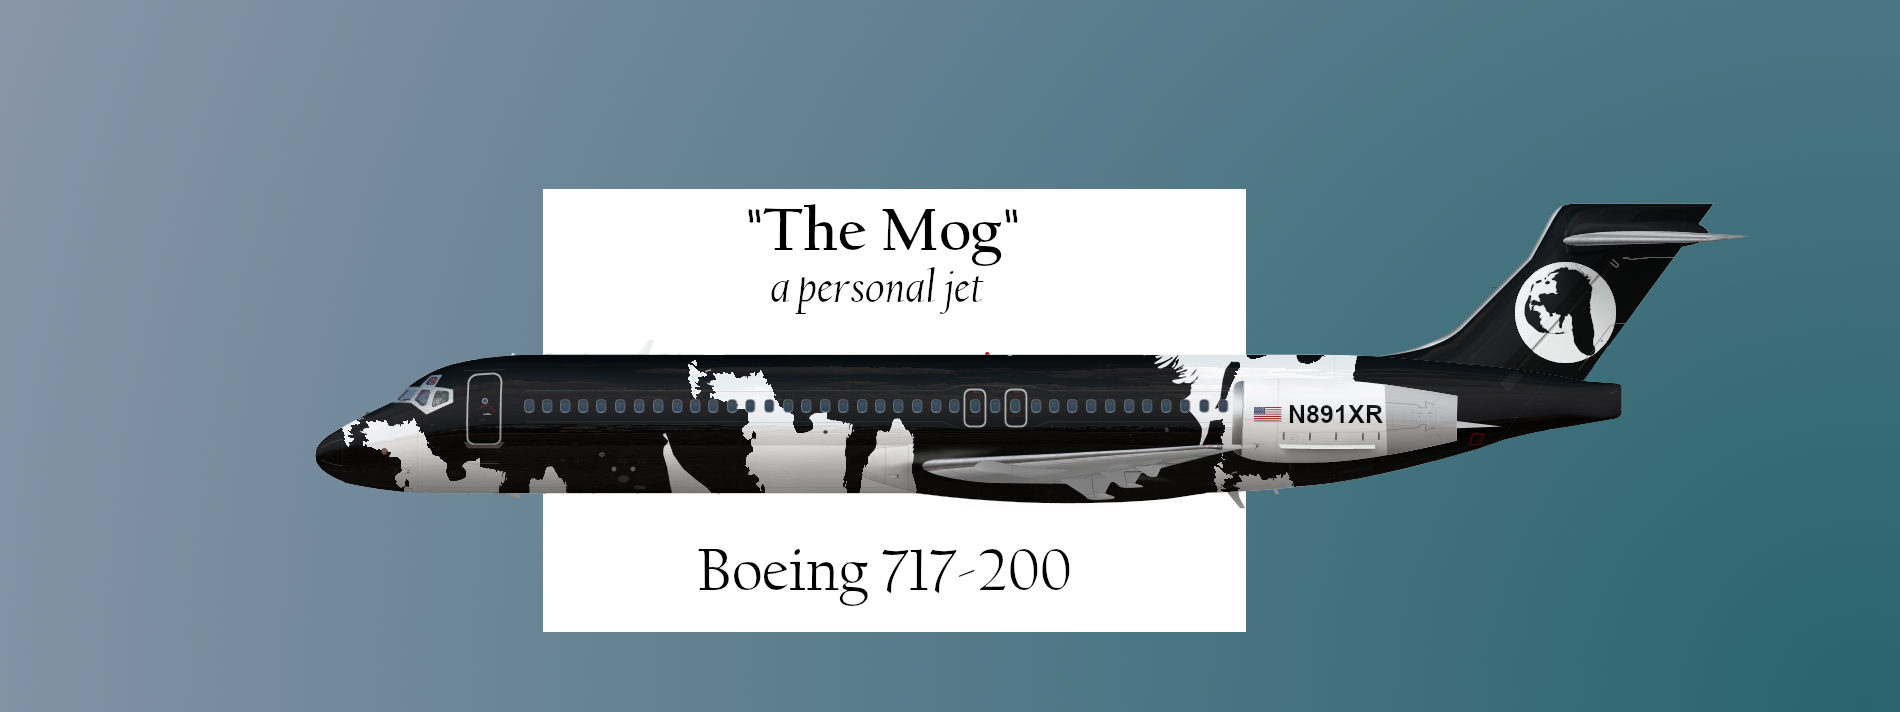 M0uhBoeing_717-200.png